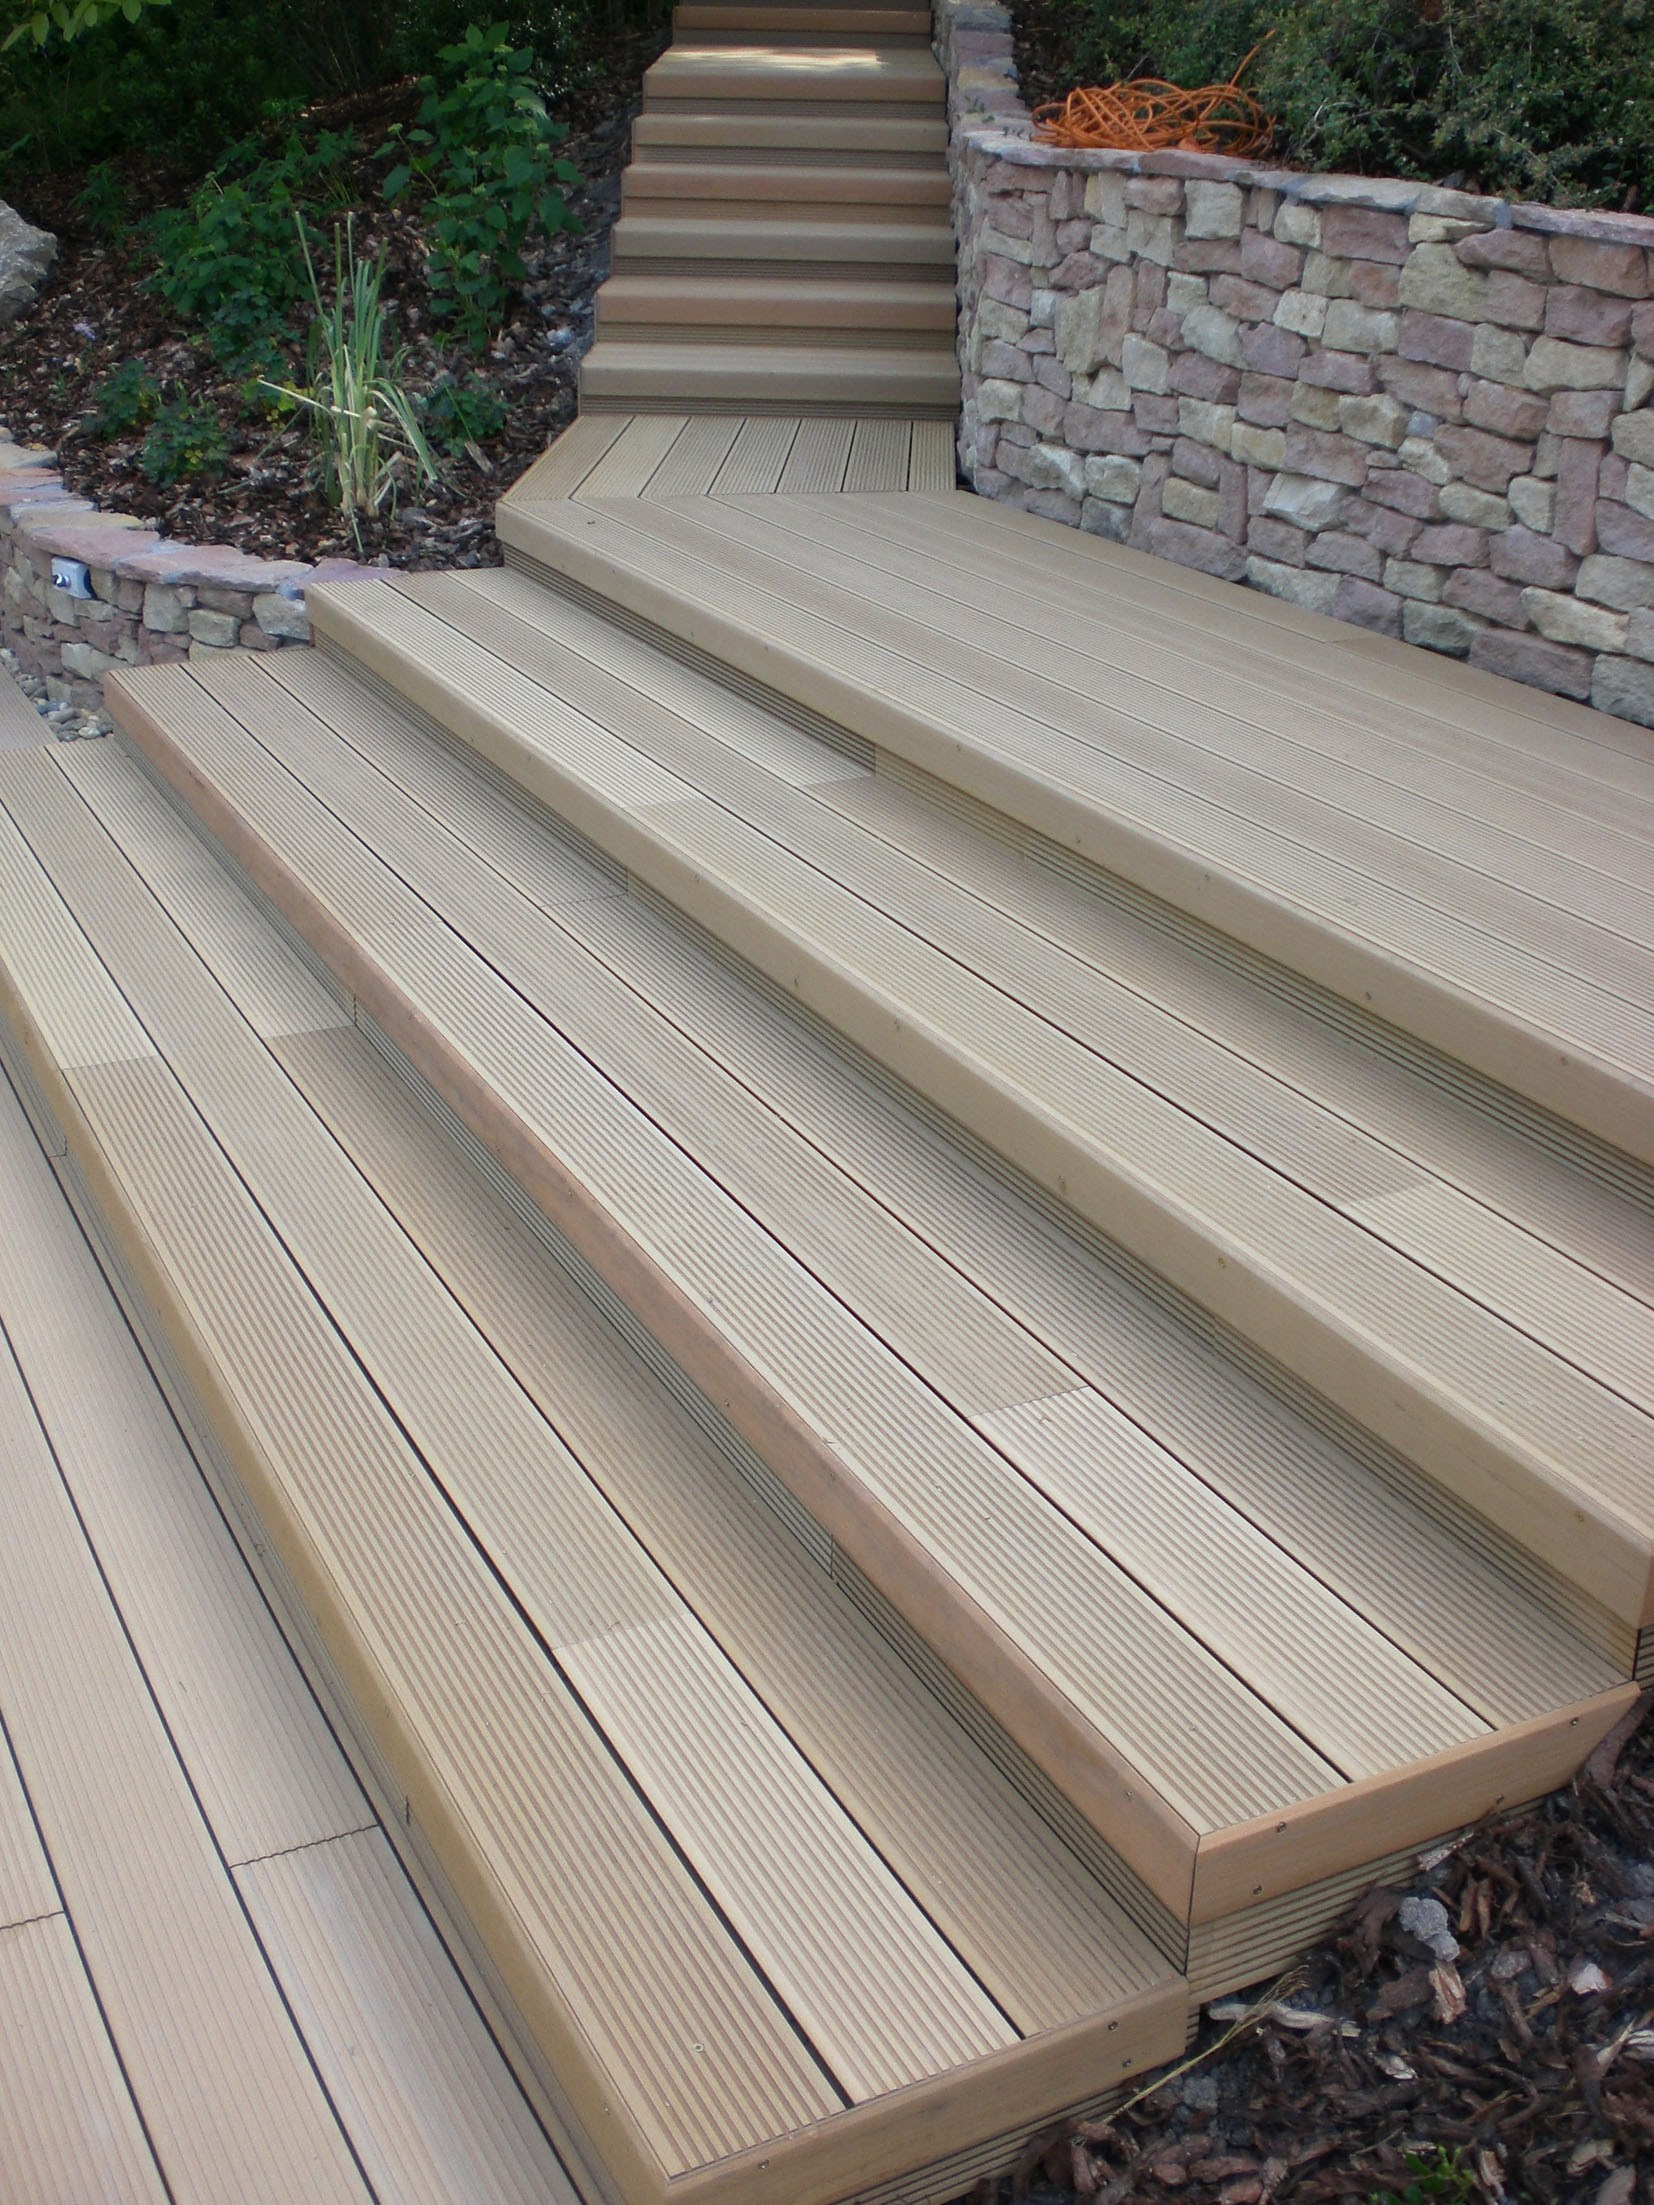 TWINSON Decking by Twinson by Deceuninck